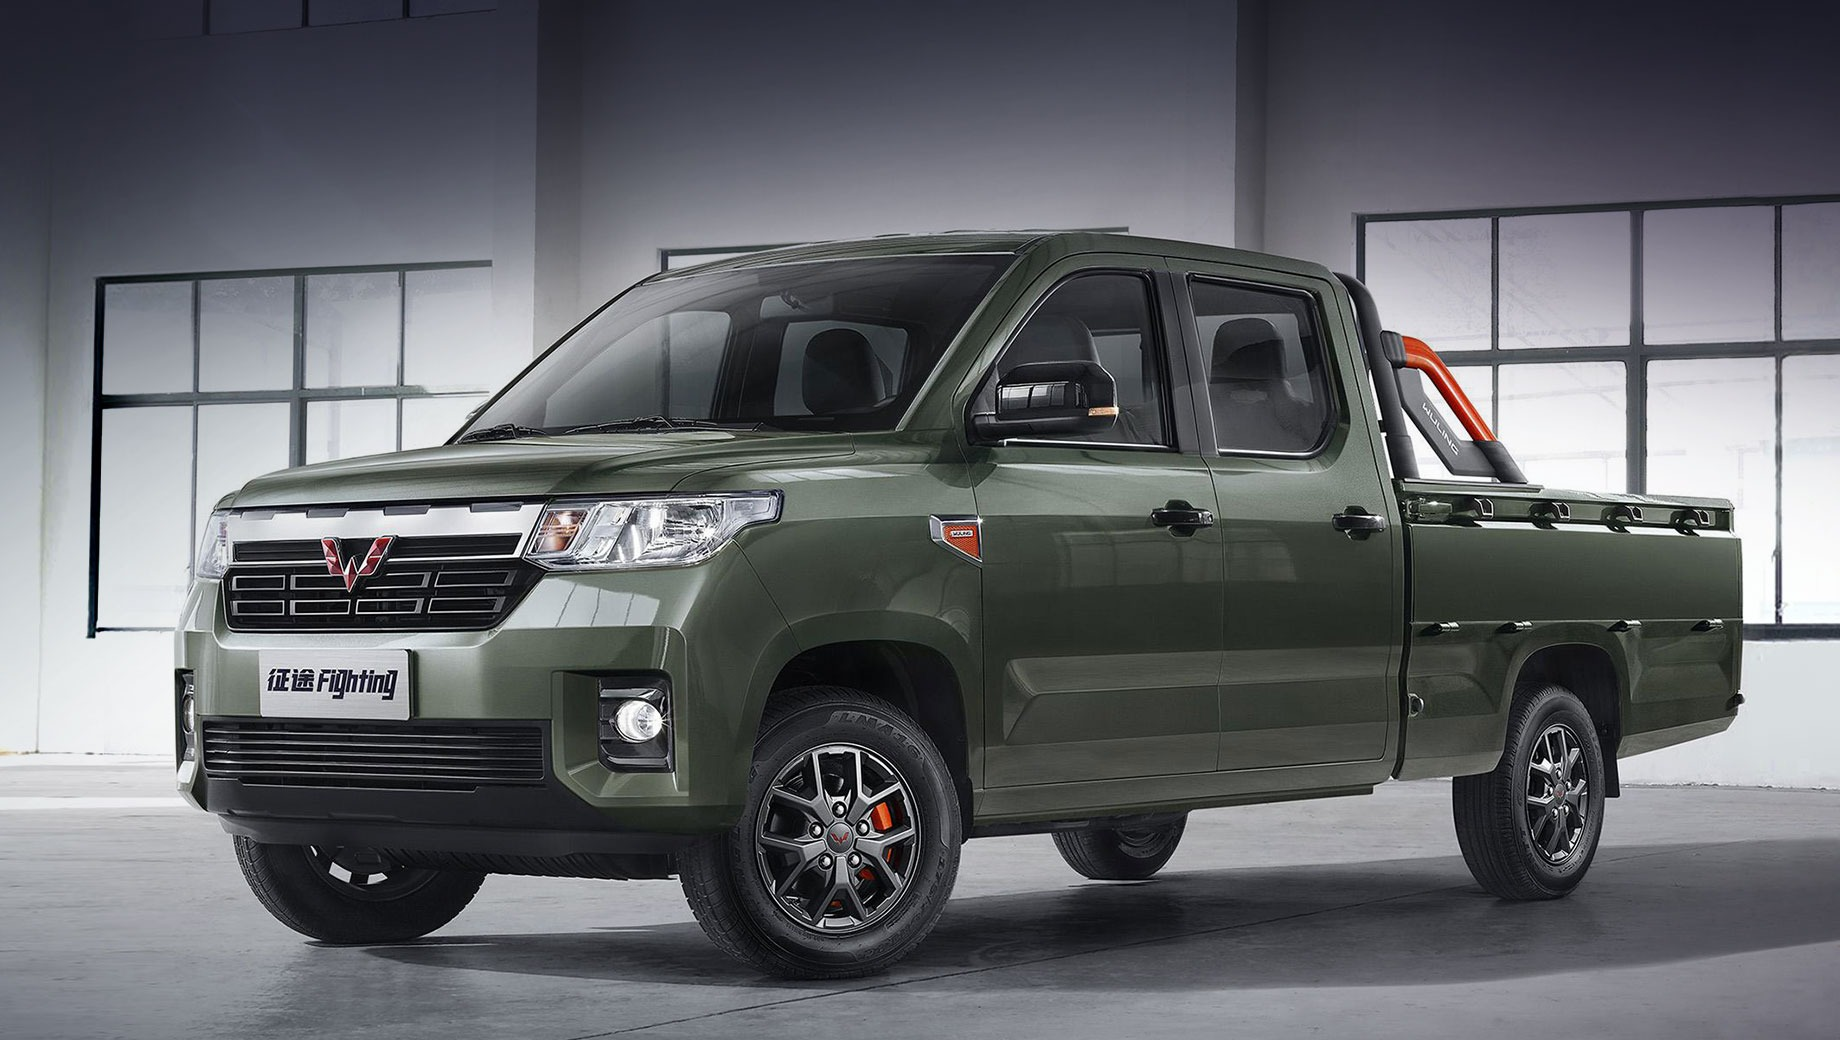 Wuling has started taking pre-orders for its newest body-on-frame pickup truck, the Zhengtu. Prices start as low as 59,800 Yuan (9,230 USD).